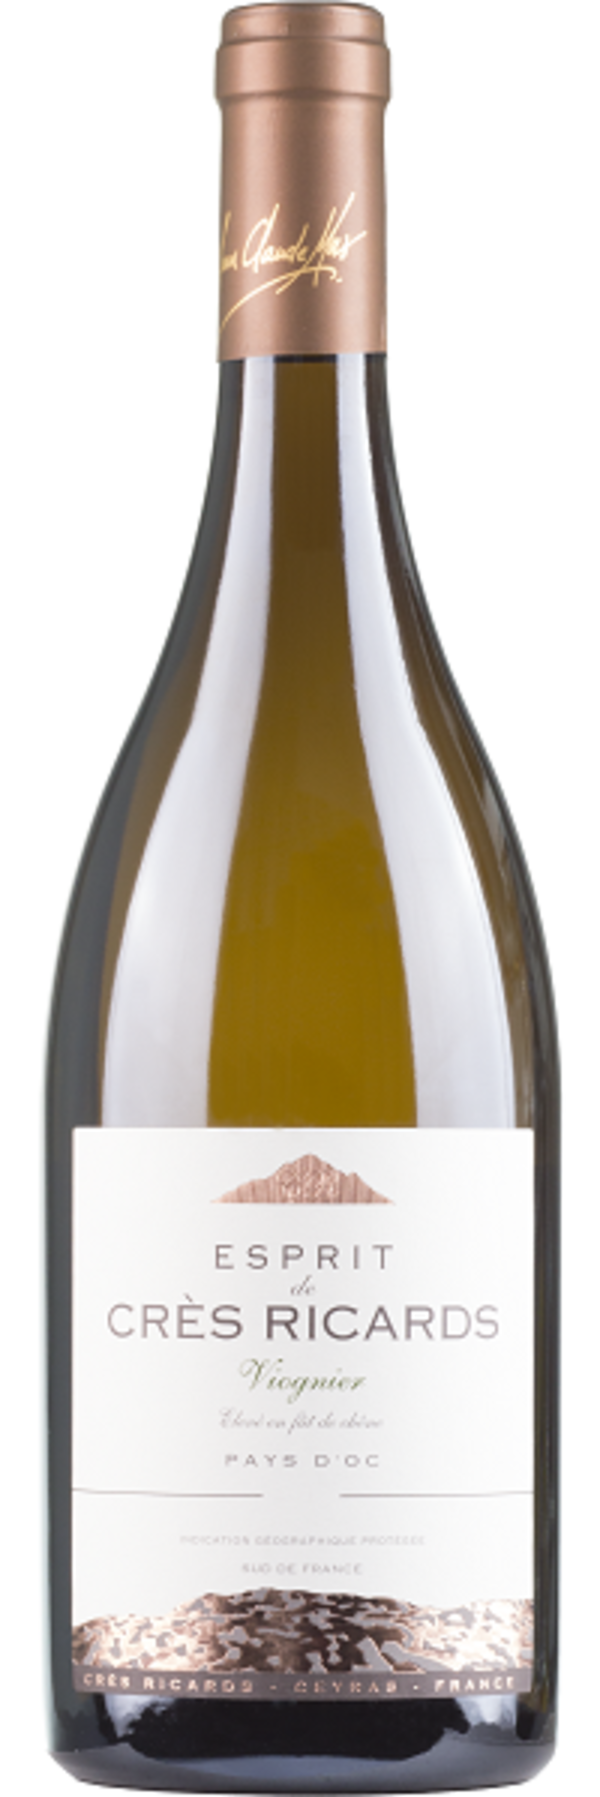 Dom. Cres Ricards Viognier IGP 2015